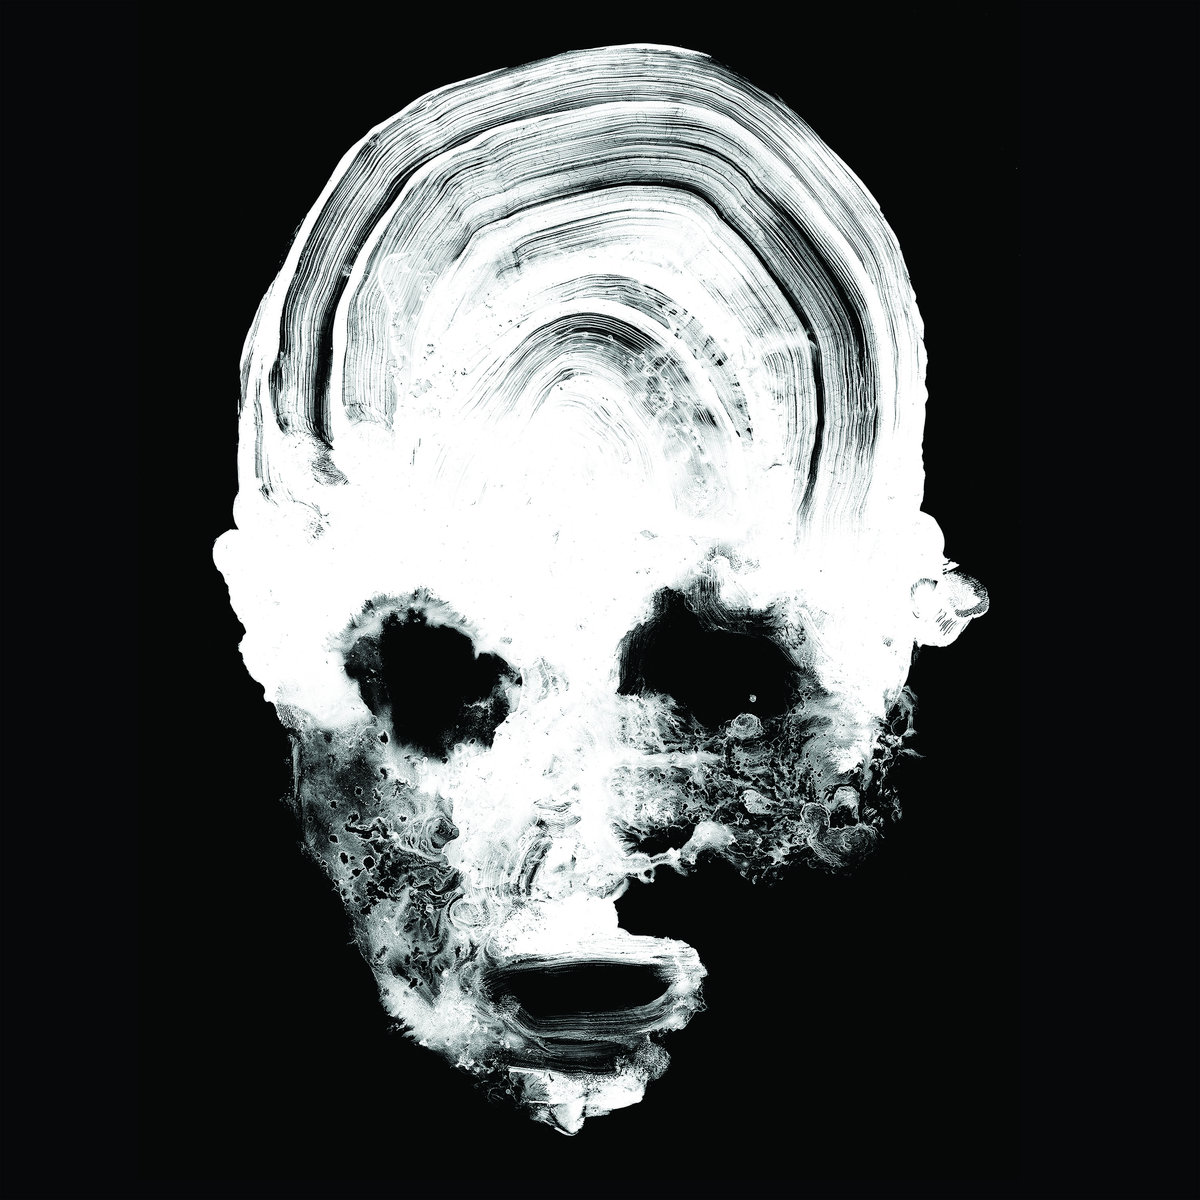 'You Won't Get What You Want' by Daughters, album review by Andy Resto